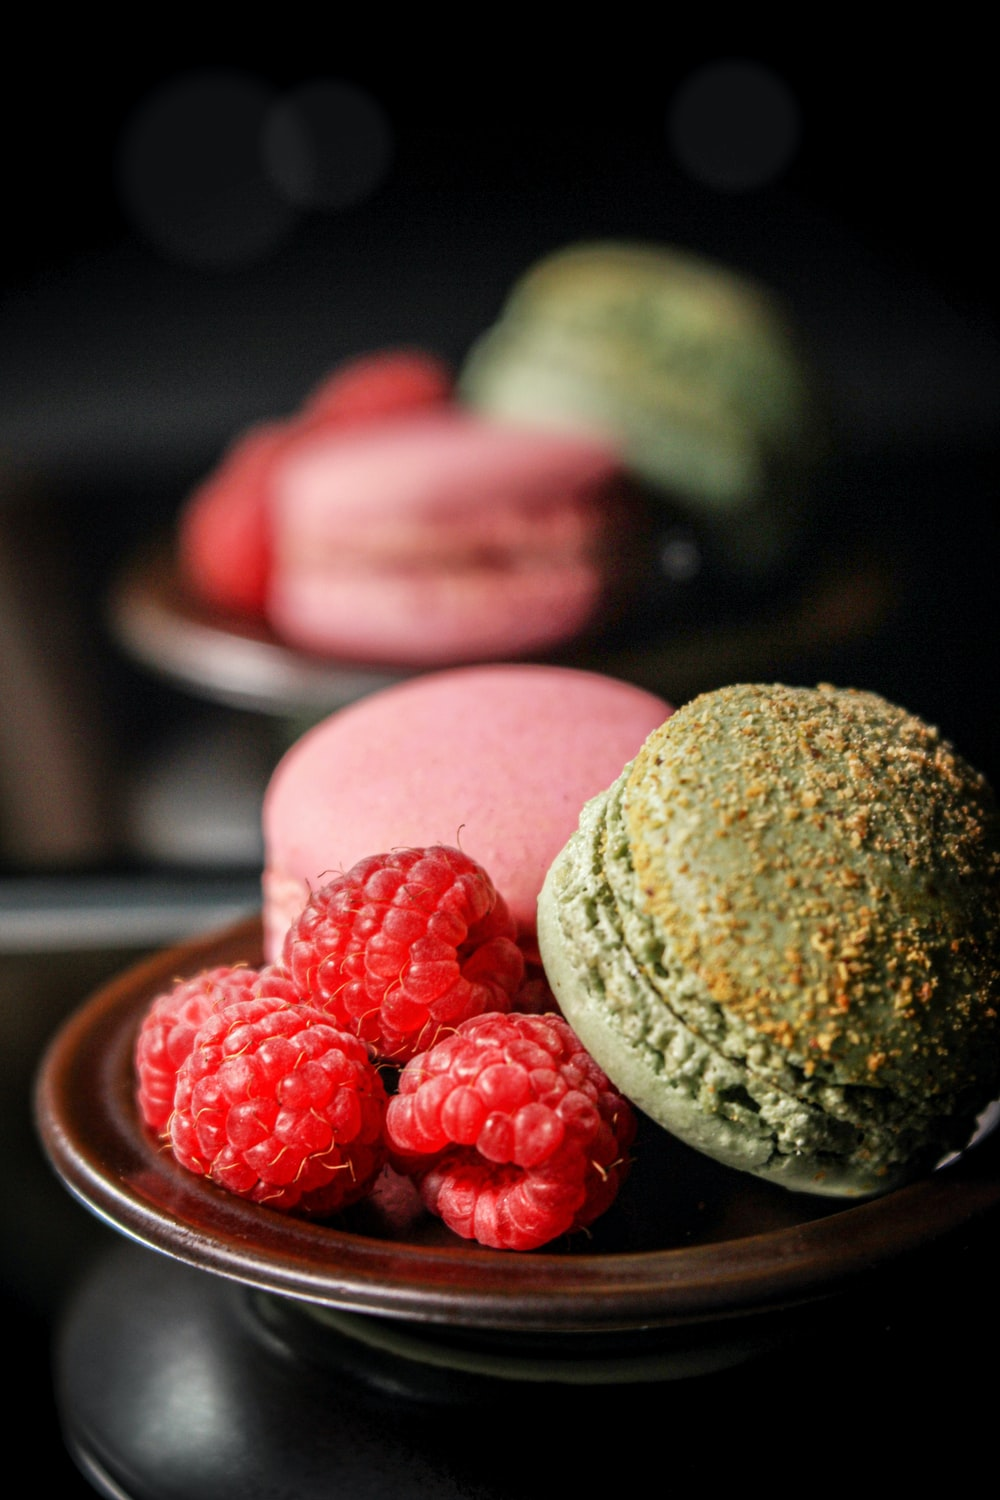 raspberries and French macaroons on plates